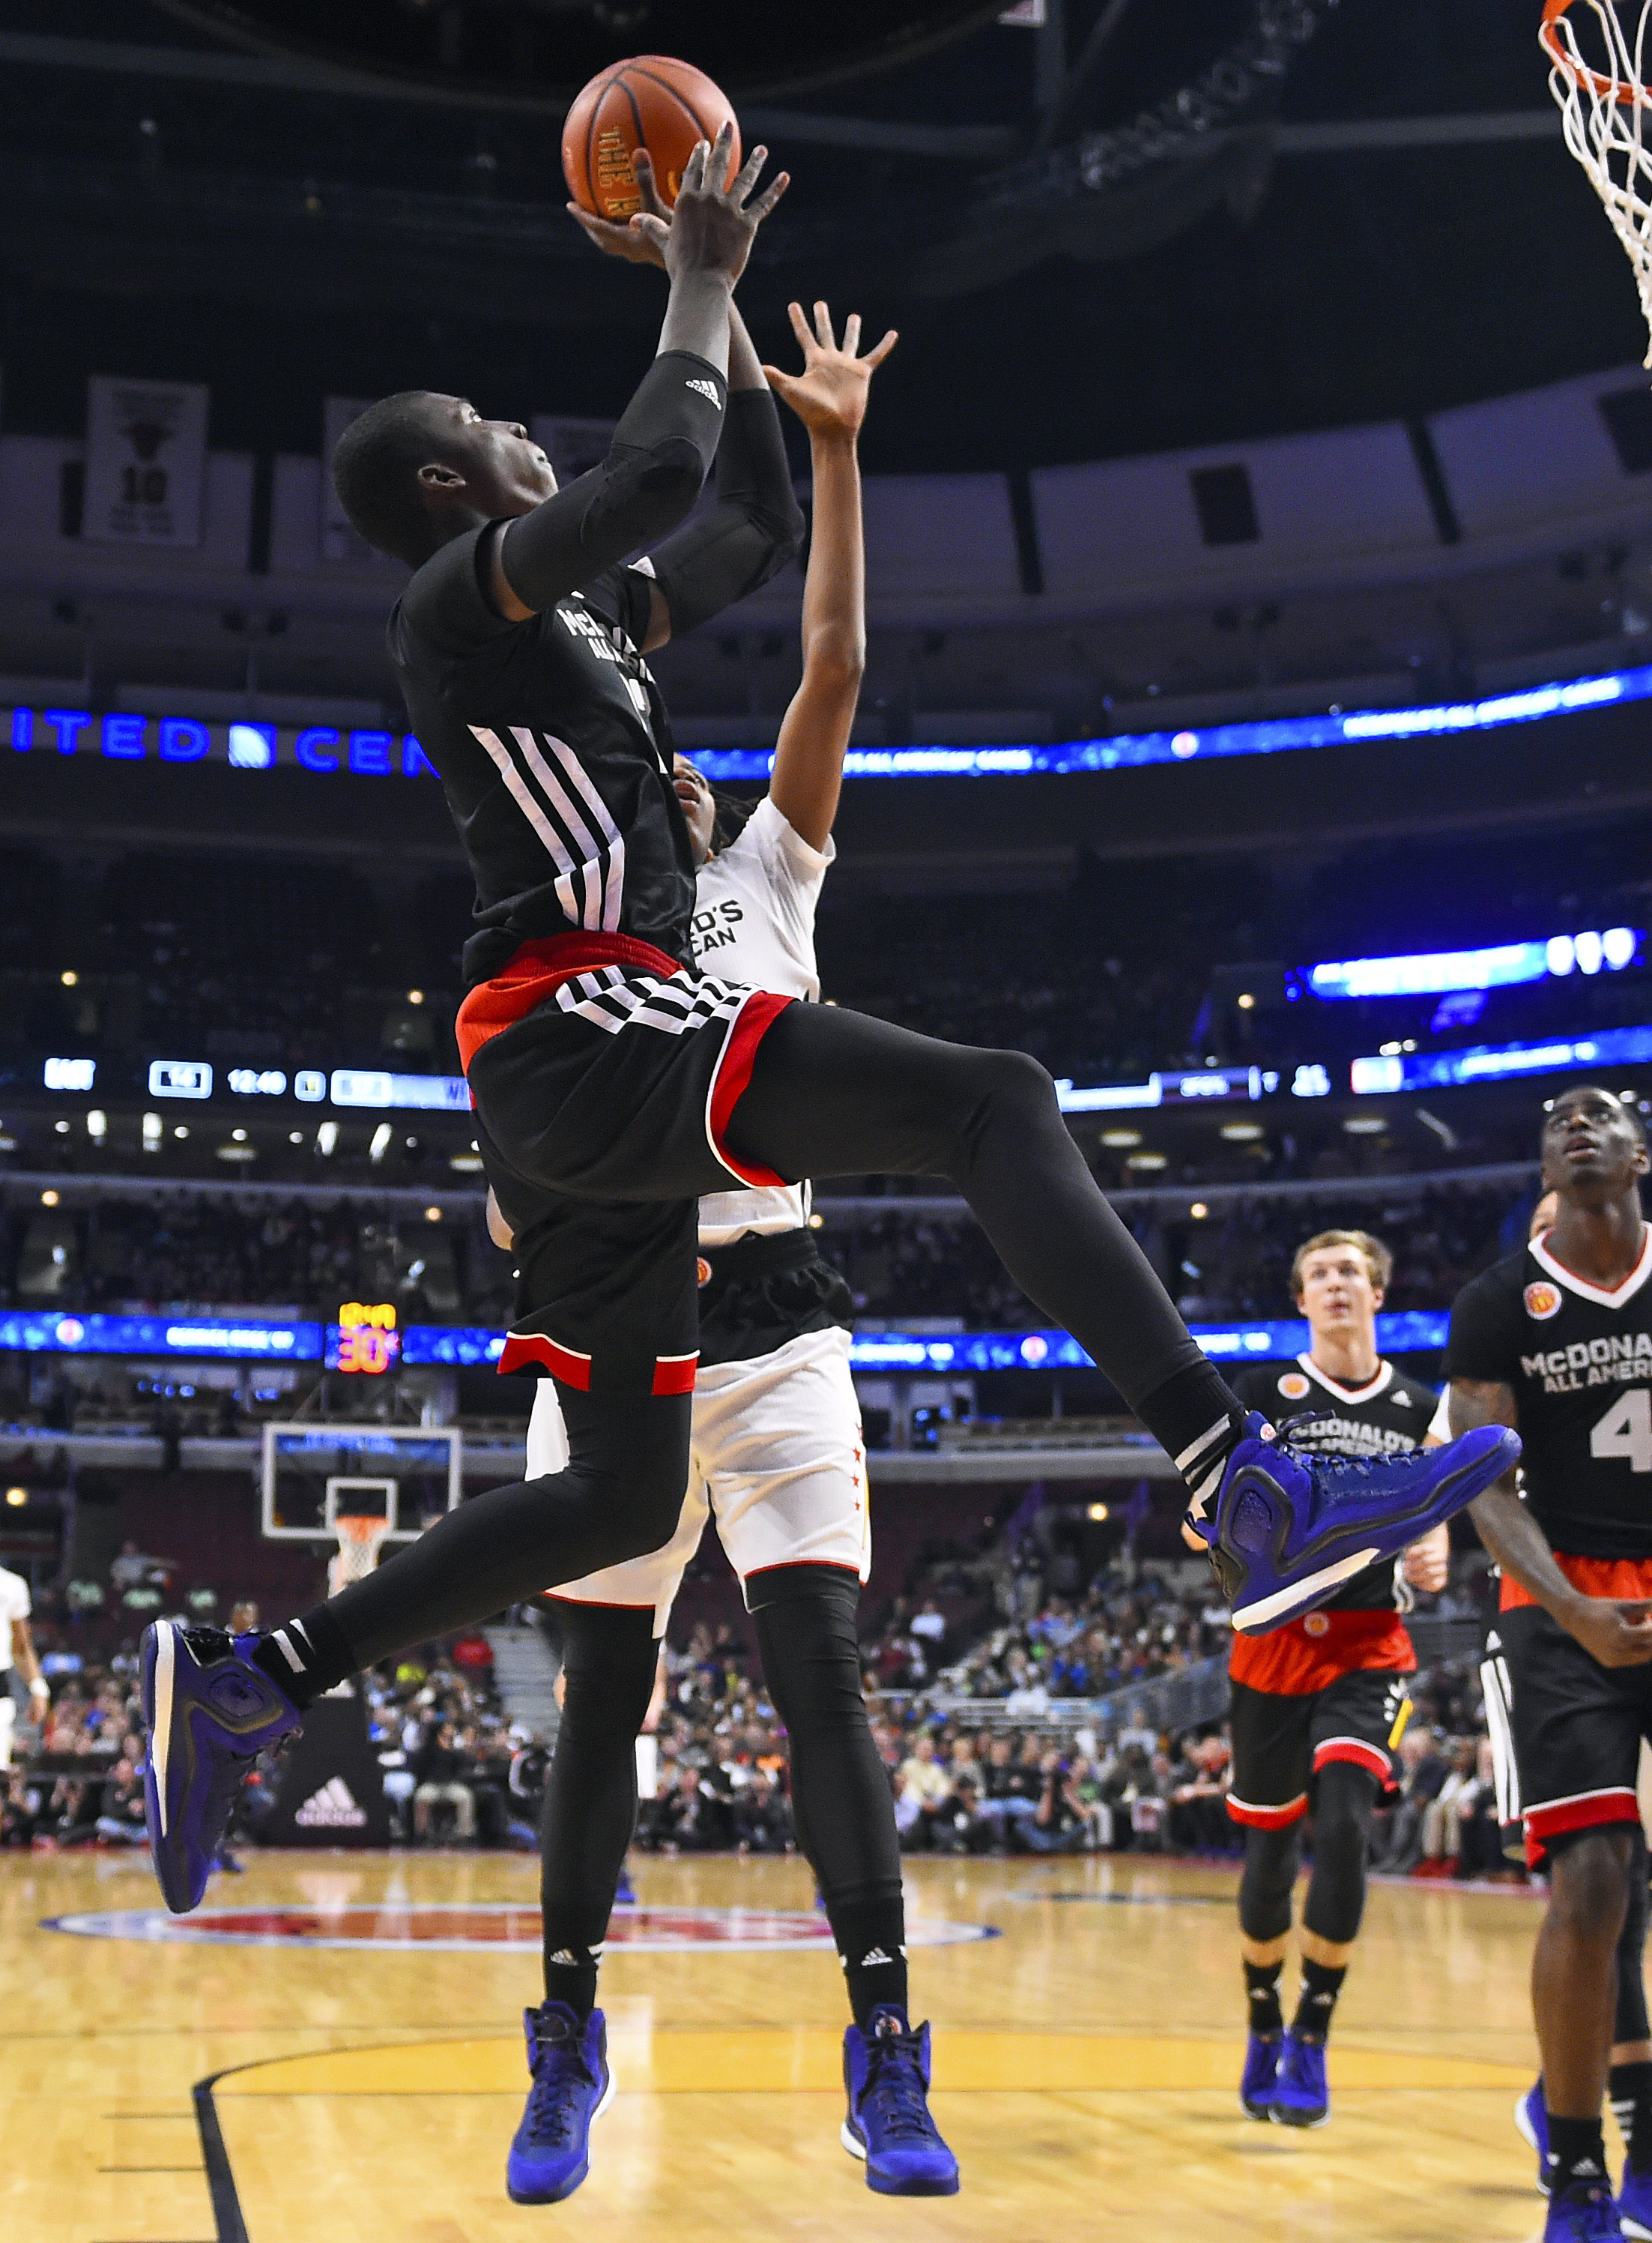 Kansas target Cheick Diallo was named MVP of the 2015 McDonald's All-American game.